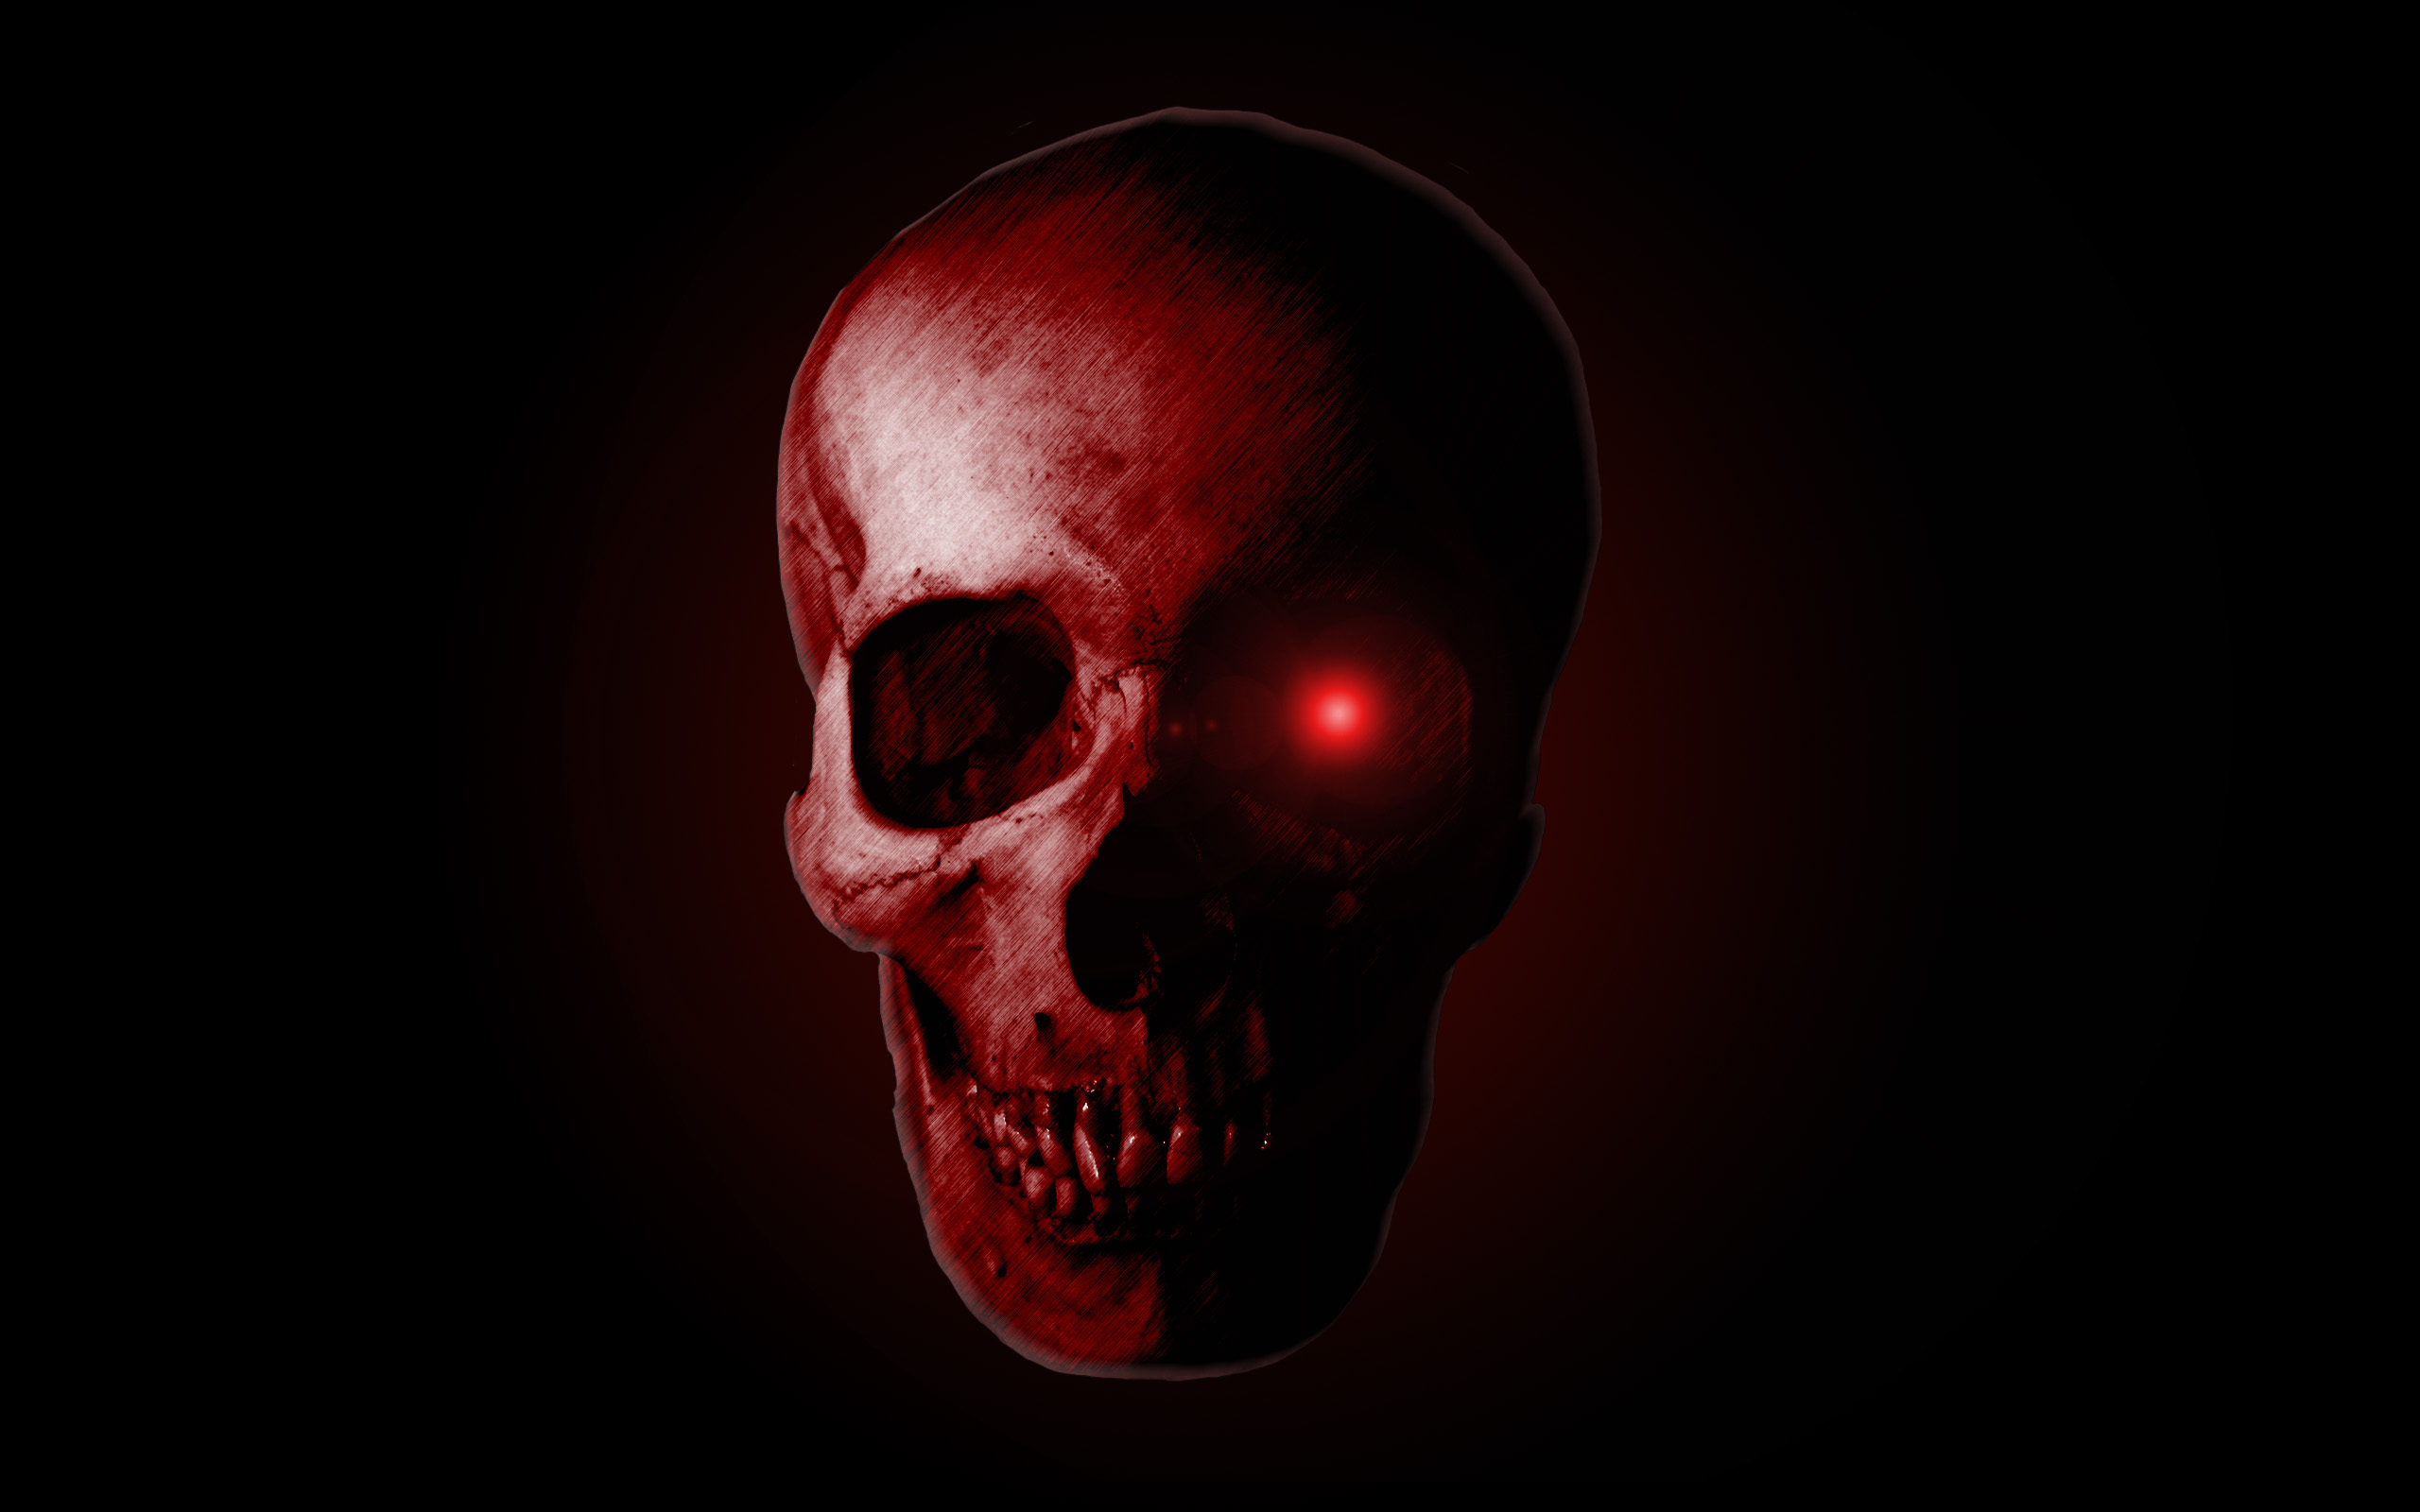 evil skull wallpapers screensaver - photo #34